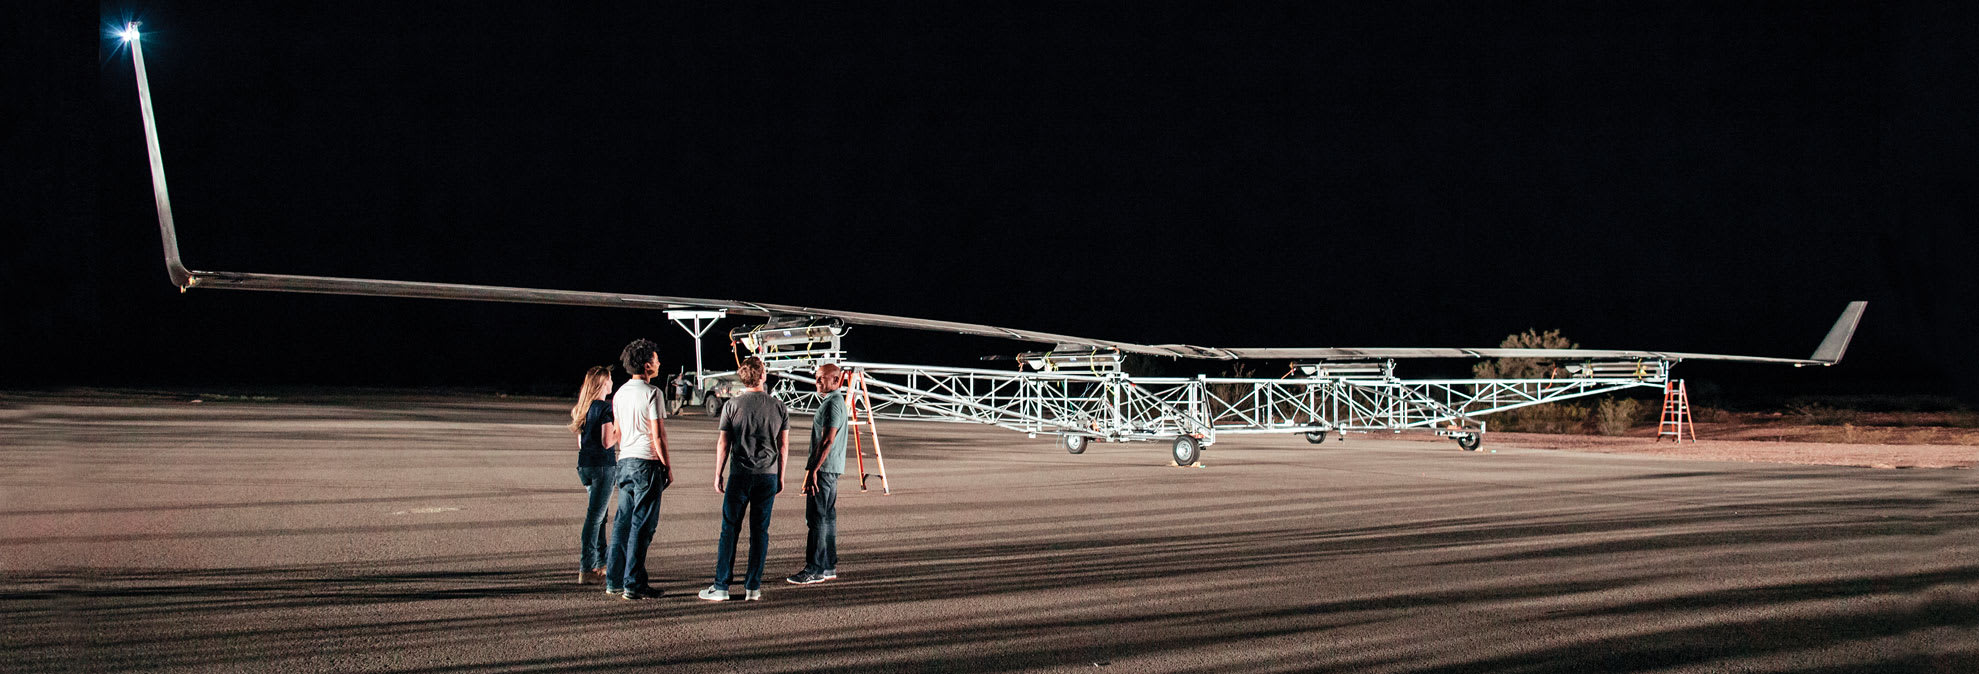 10 Ways Drones Are Changing Your World